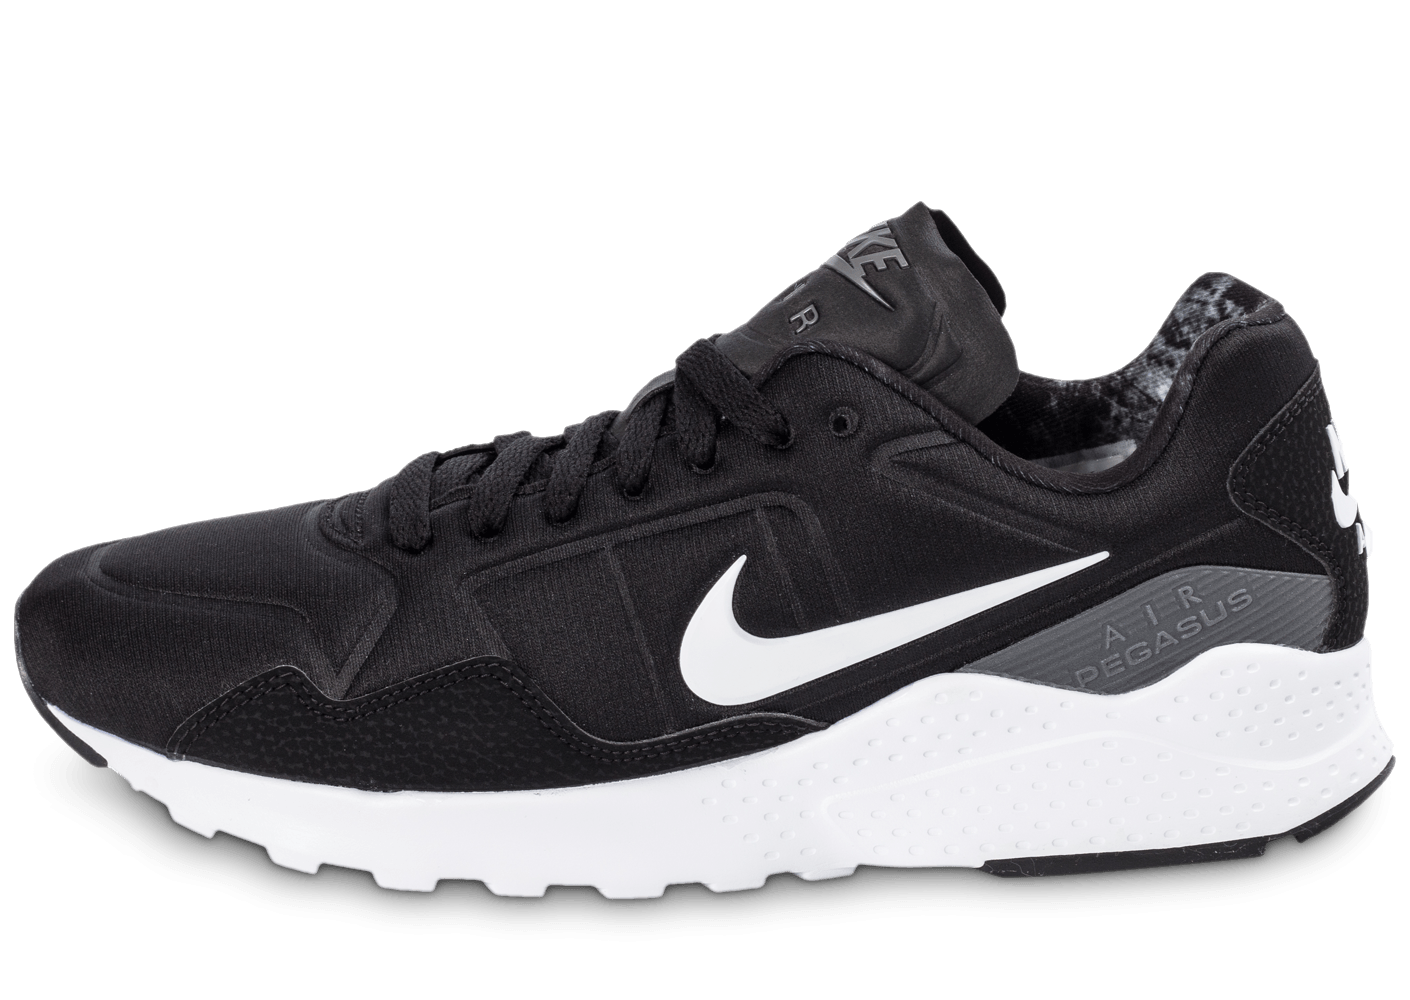 nike air zoom pegasus 92 noire chaussures homme chausport. Black Bedroom Furniture Sets. Home Design Ideas